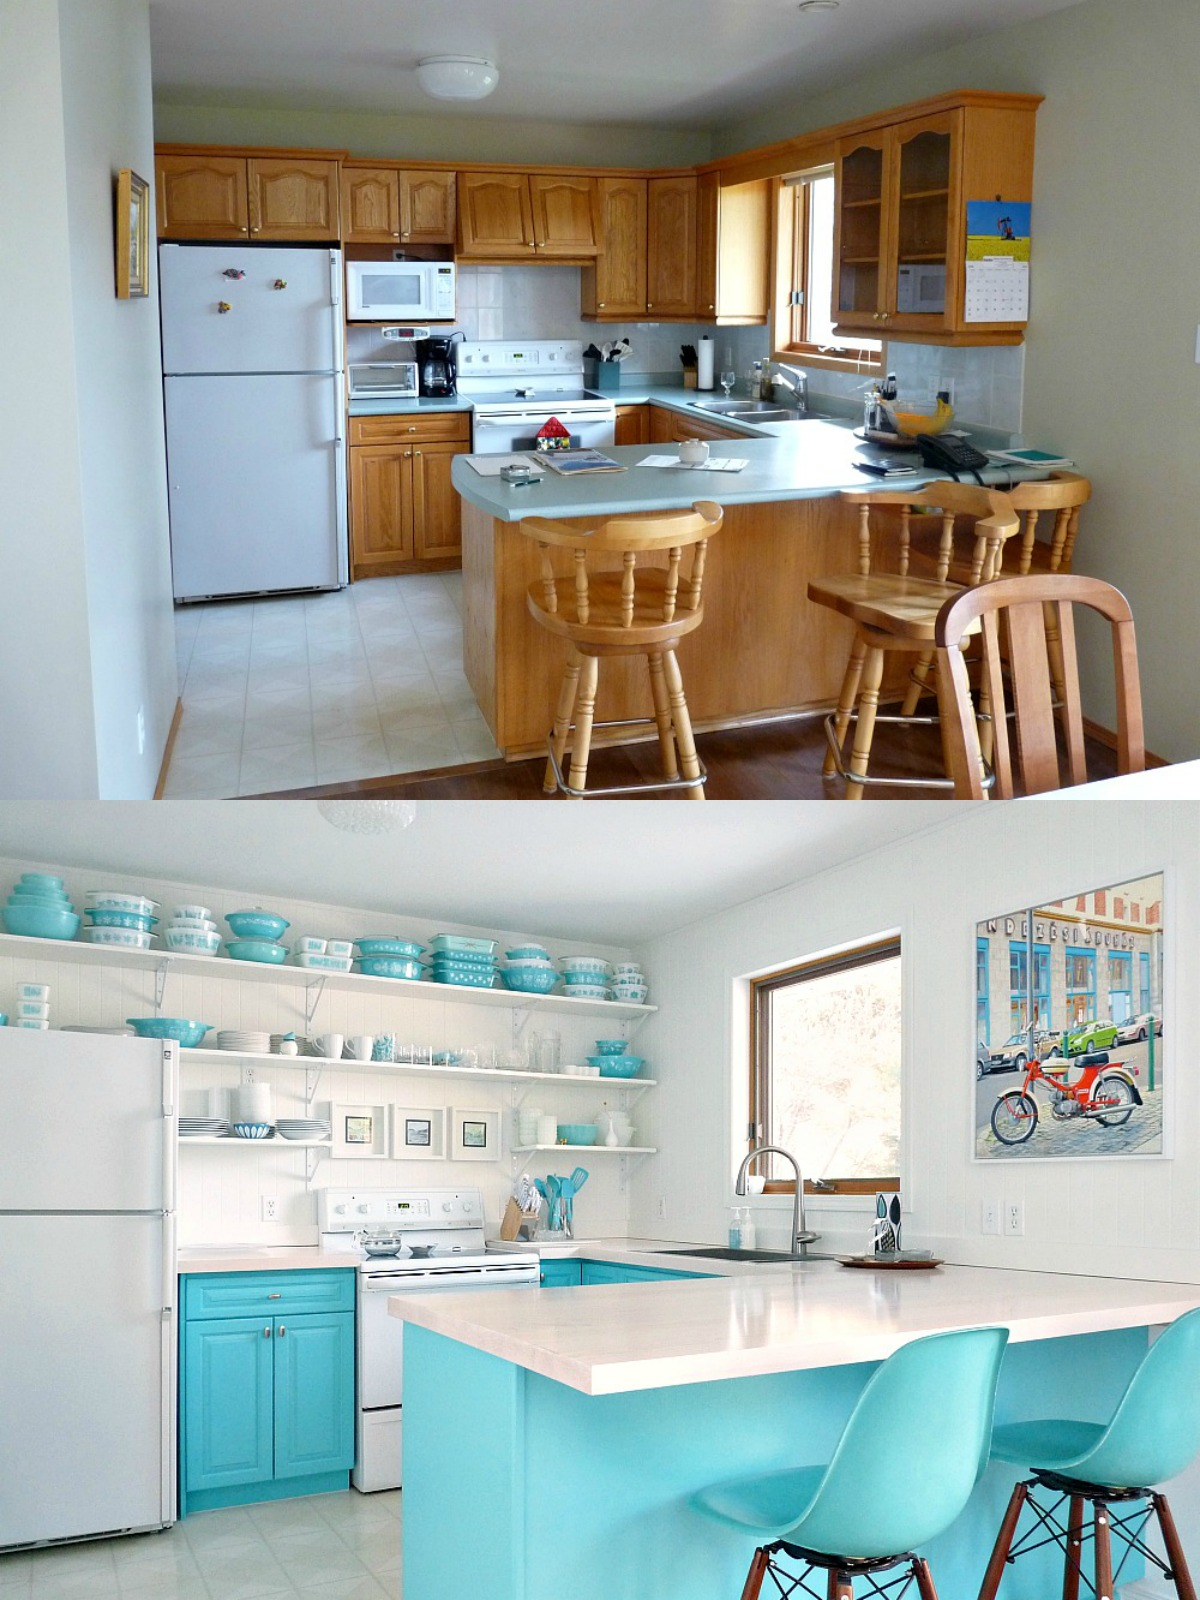 How to Paint Kitchen Cabinets ... : paint or stain kitchen cabinets - hauntedcathouse.org